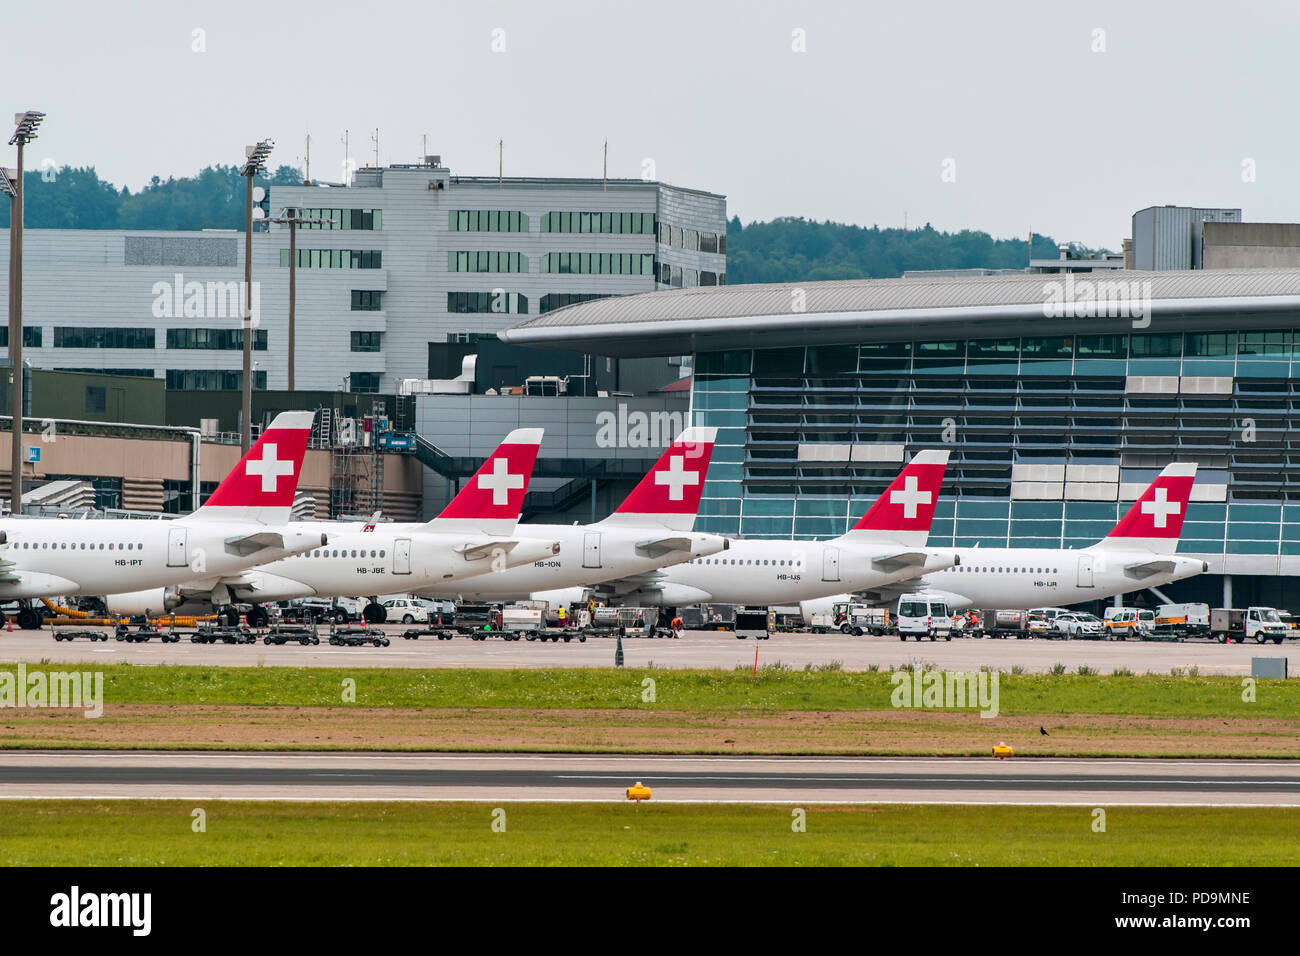 Tail fins of Swiss aircraft at Zurich Airport, Switzerland - Stock Image